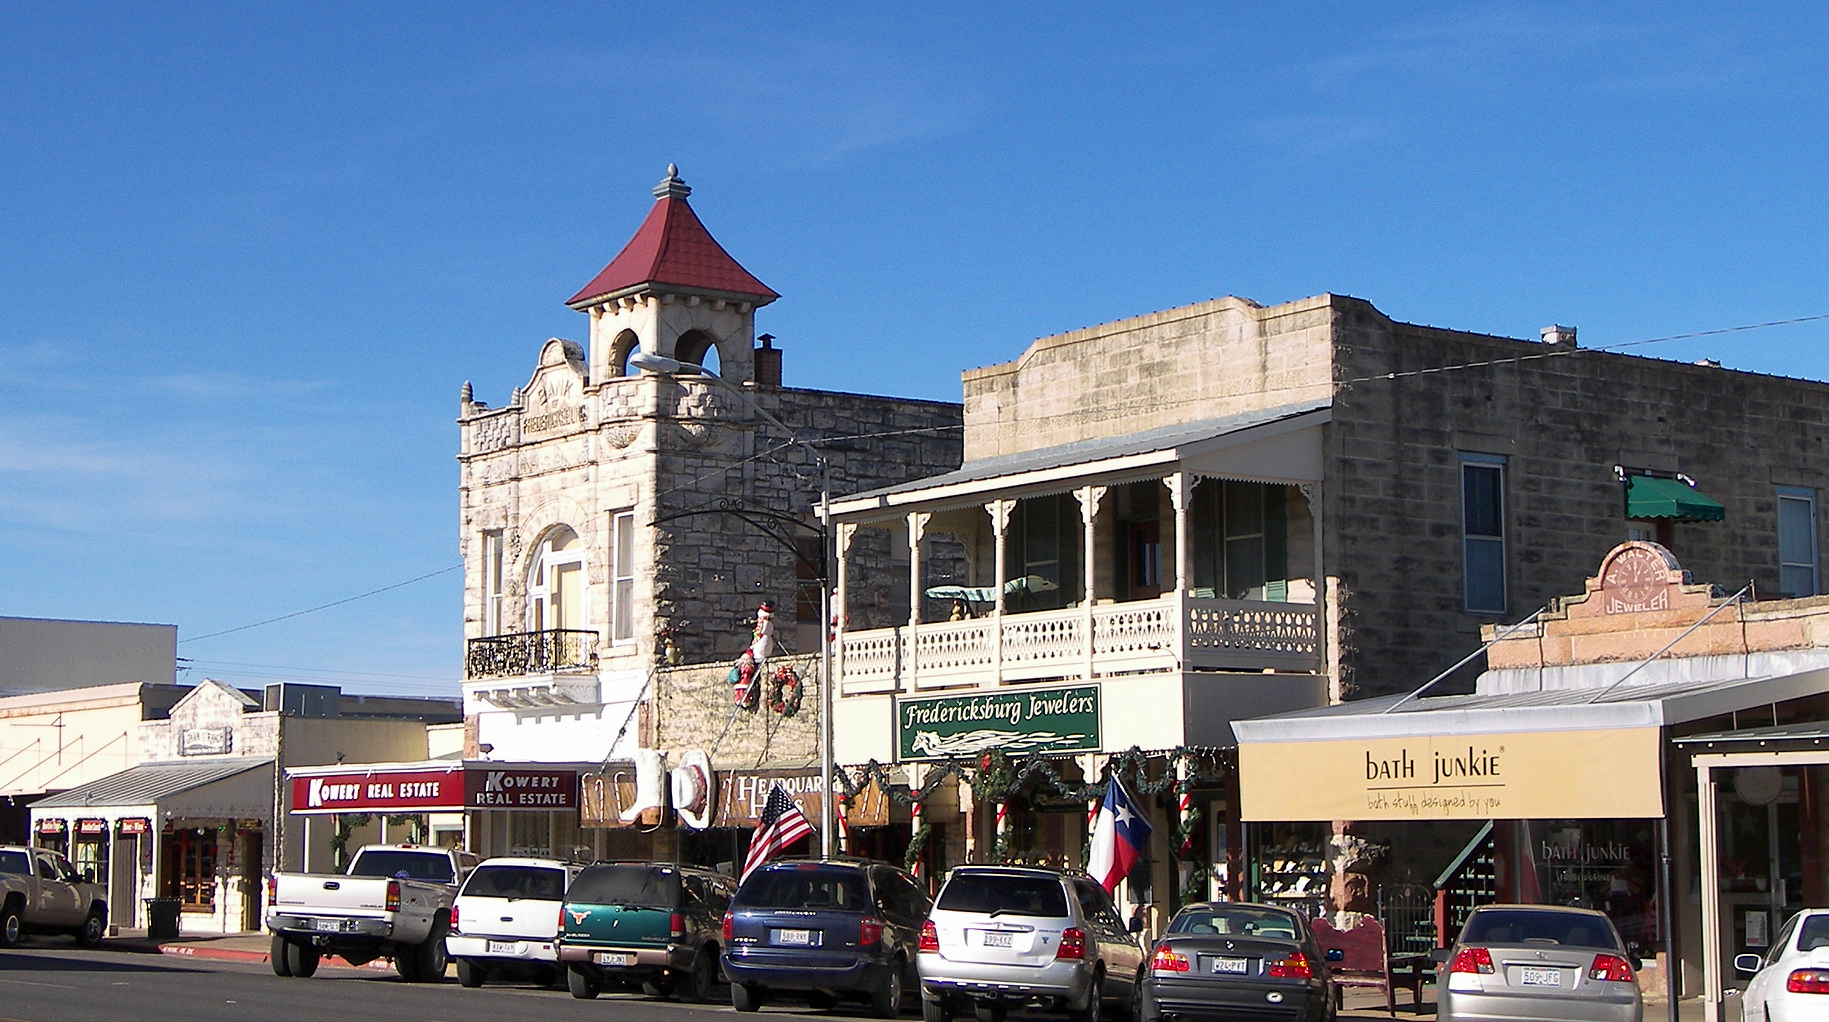 fredericksburg texas creative small towns